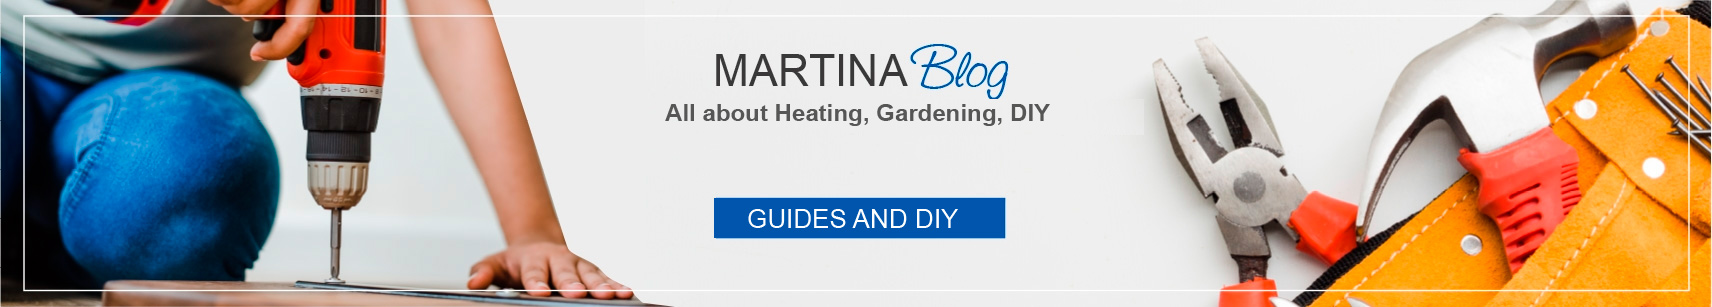 All about heating, gardening and DIY